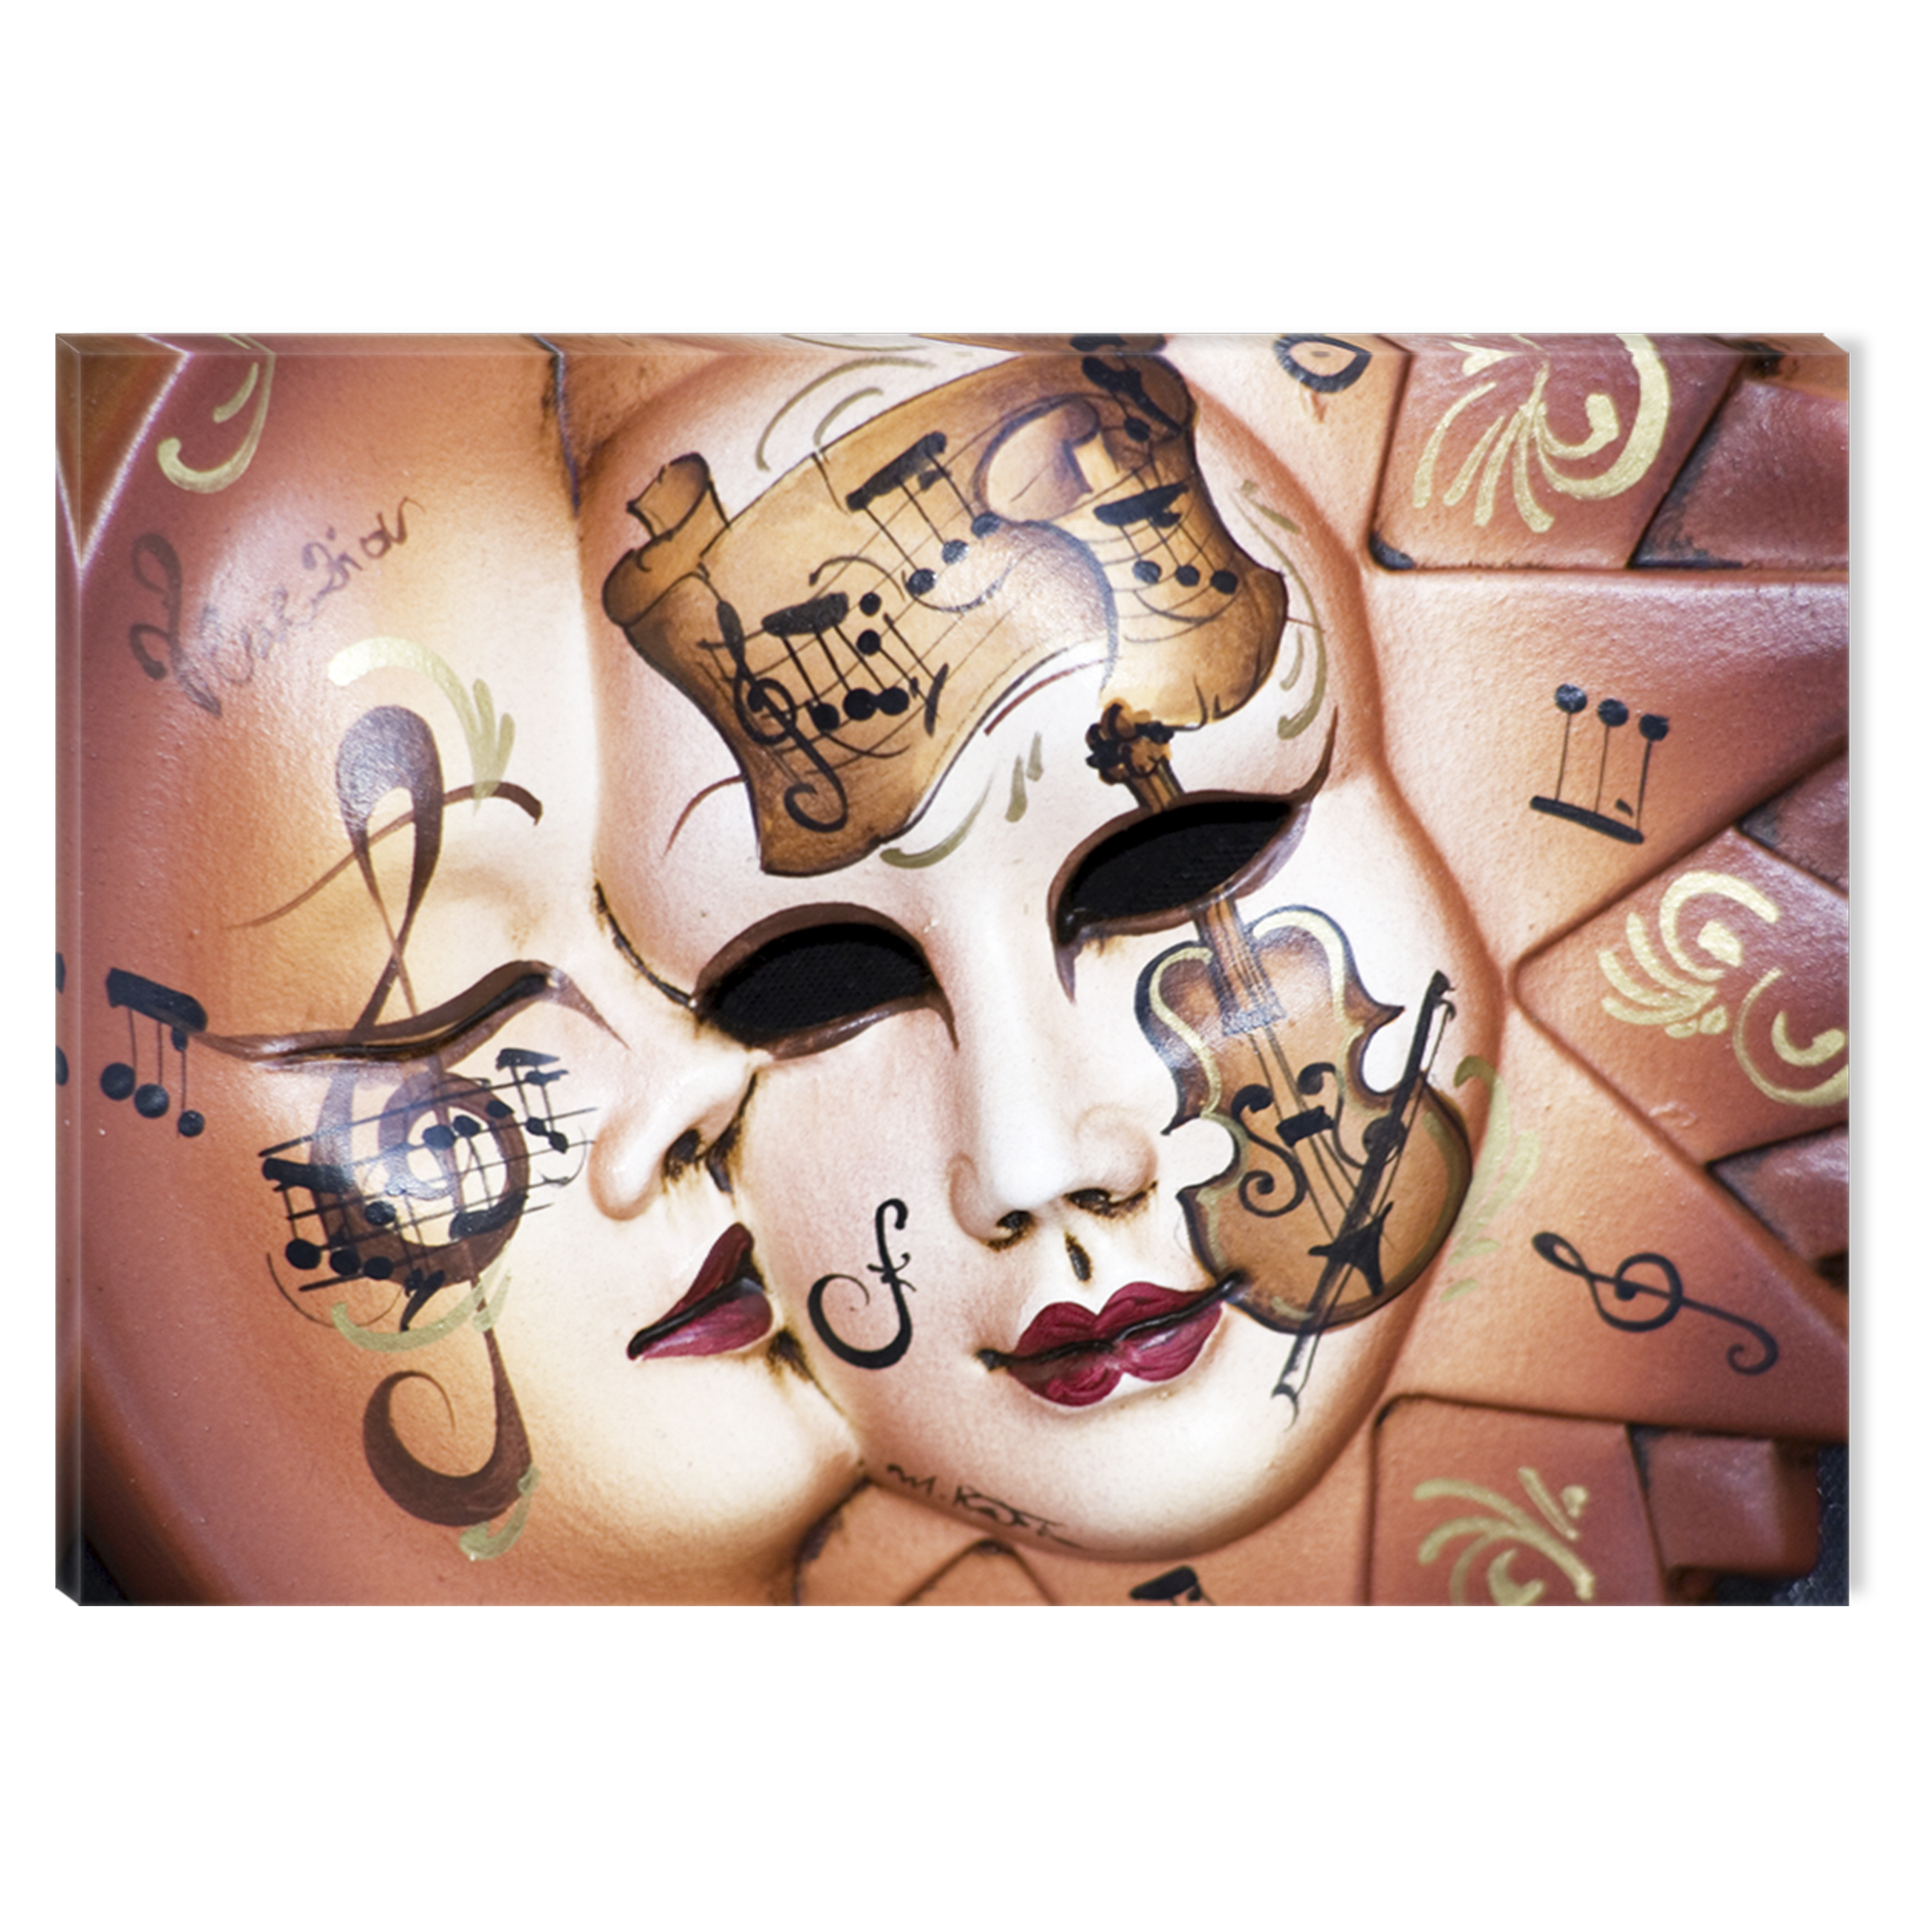 Startonight Canvas Wall Art Music Masks USA Design for Home Decor, Illuminated Abstract Painting Modern Canvas Artwork Framed Ready to Hang Medium 23.62 X 35.43 inch